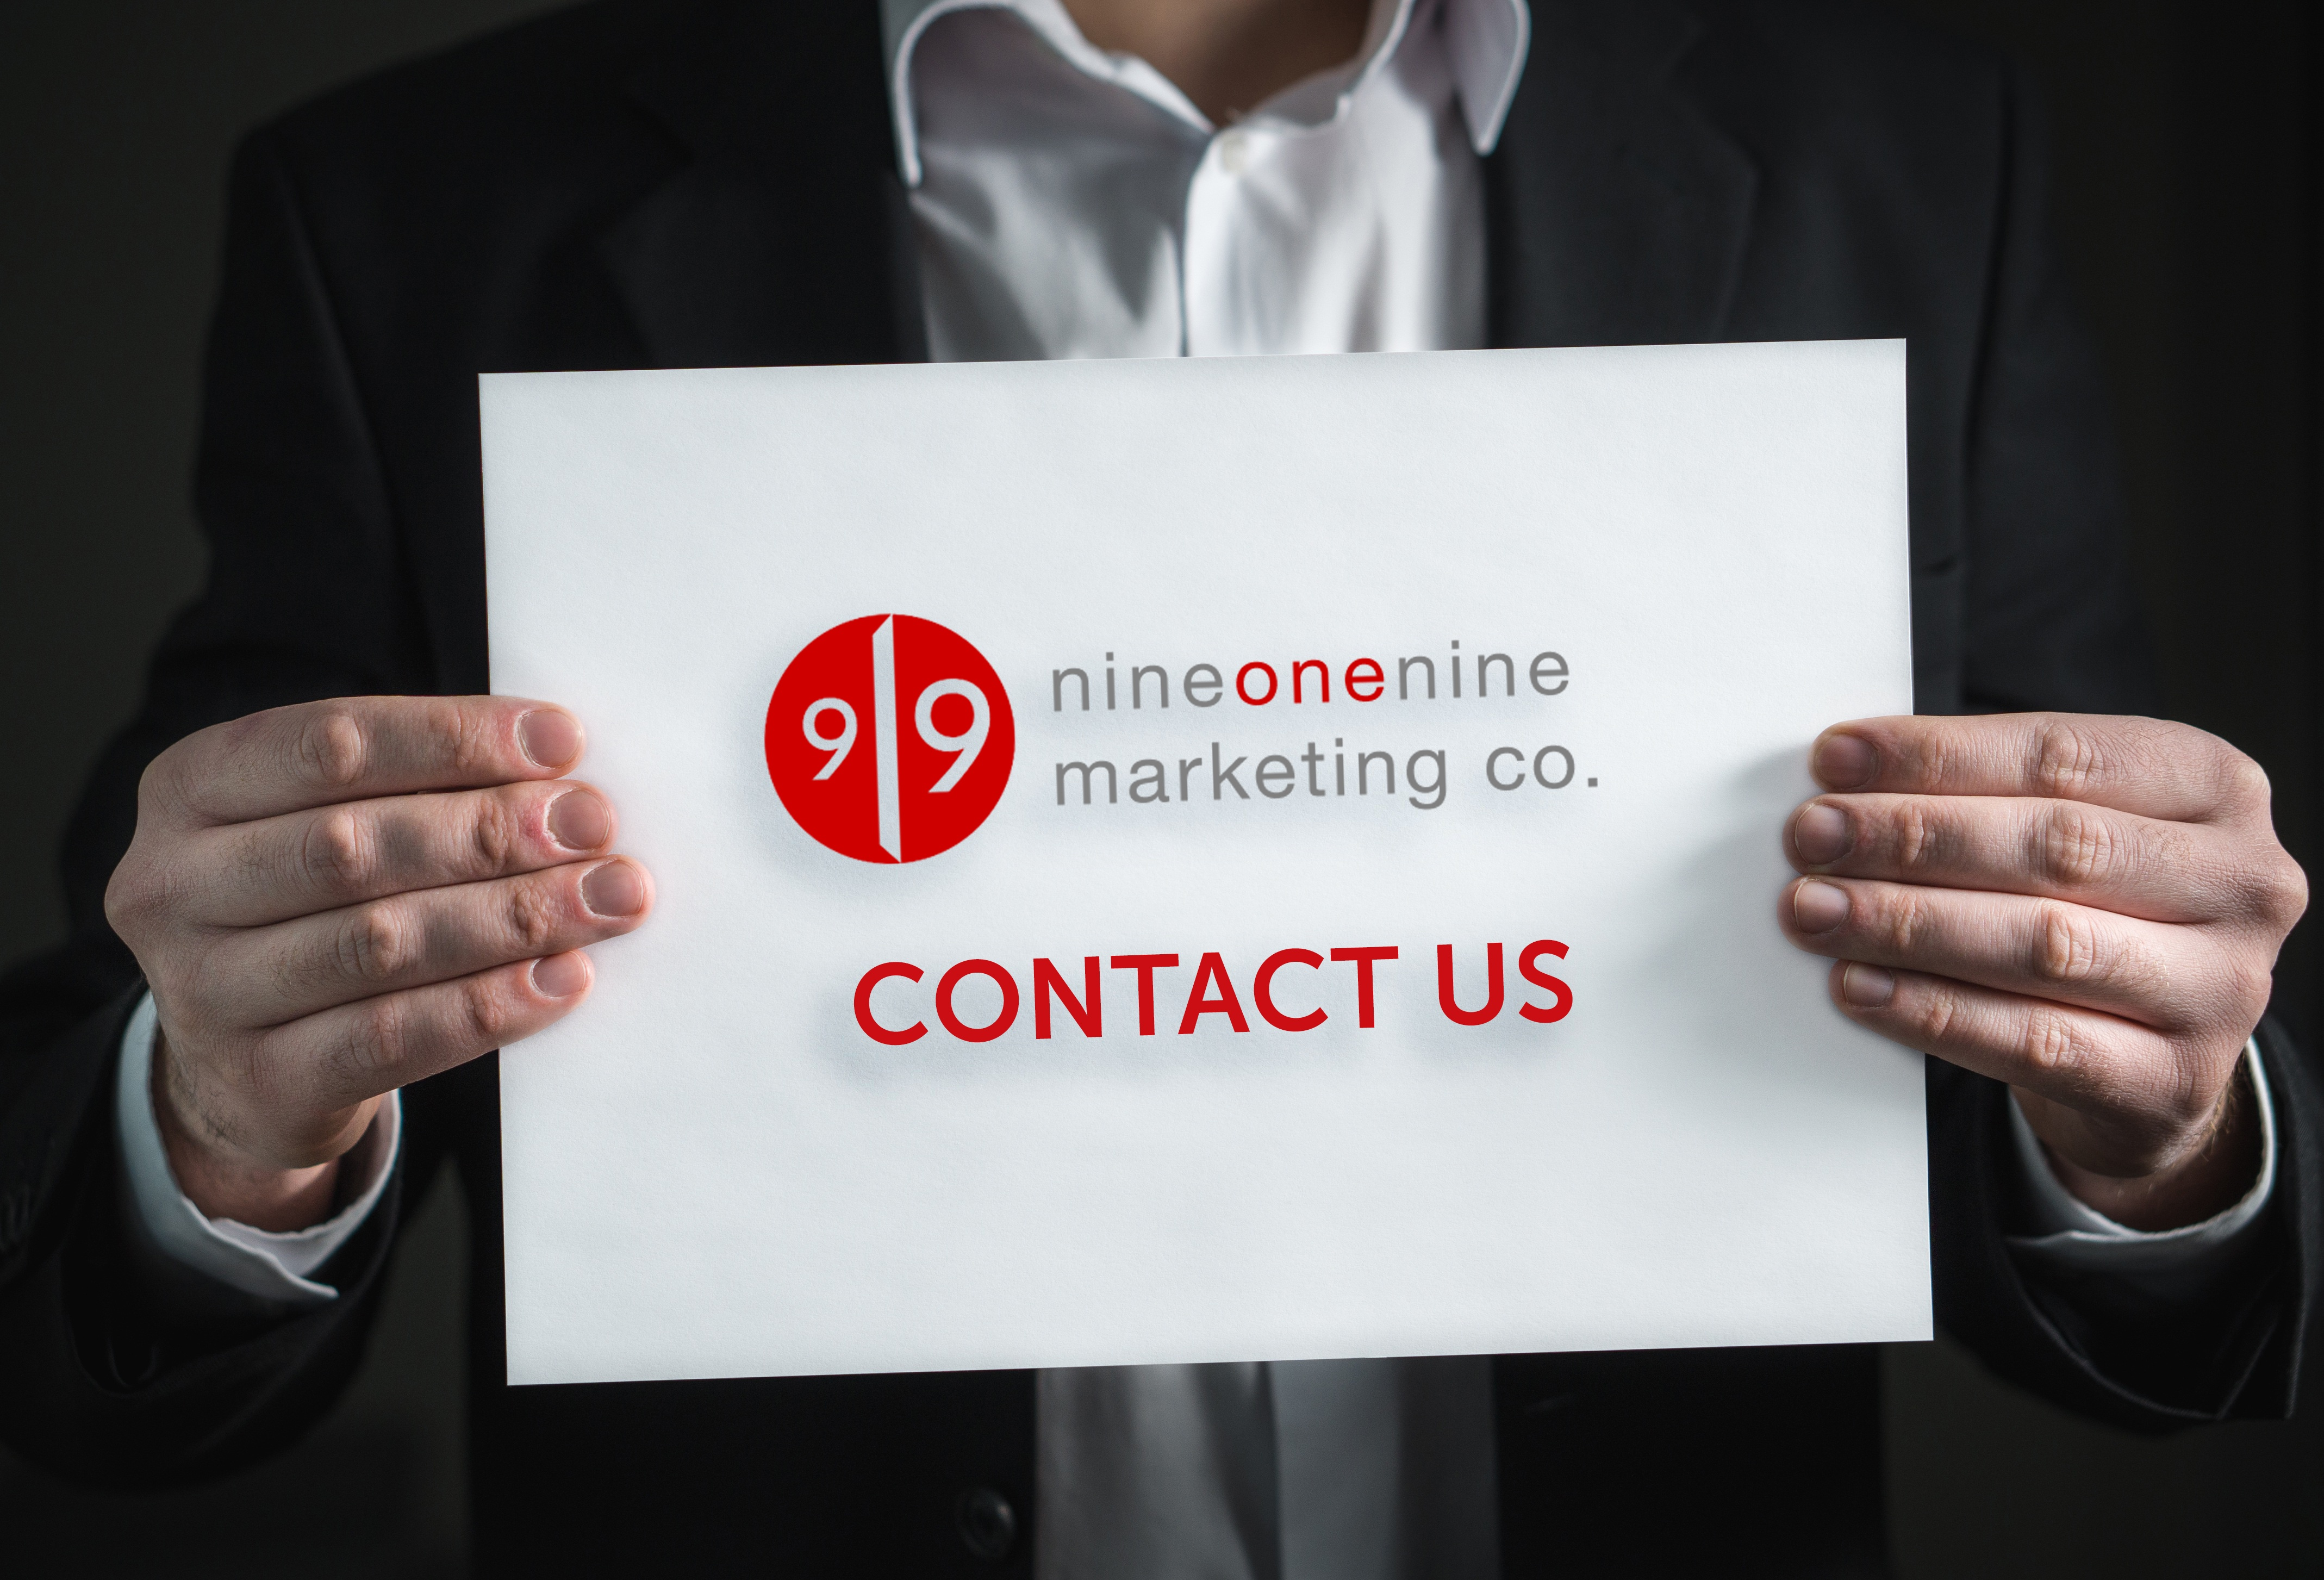 Contact 919 Marketing